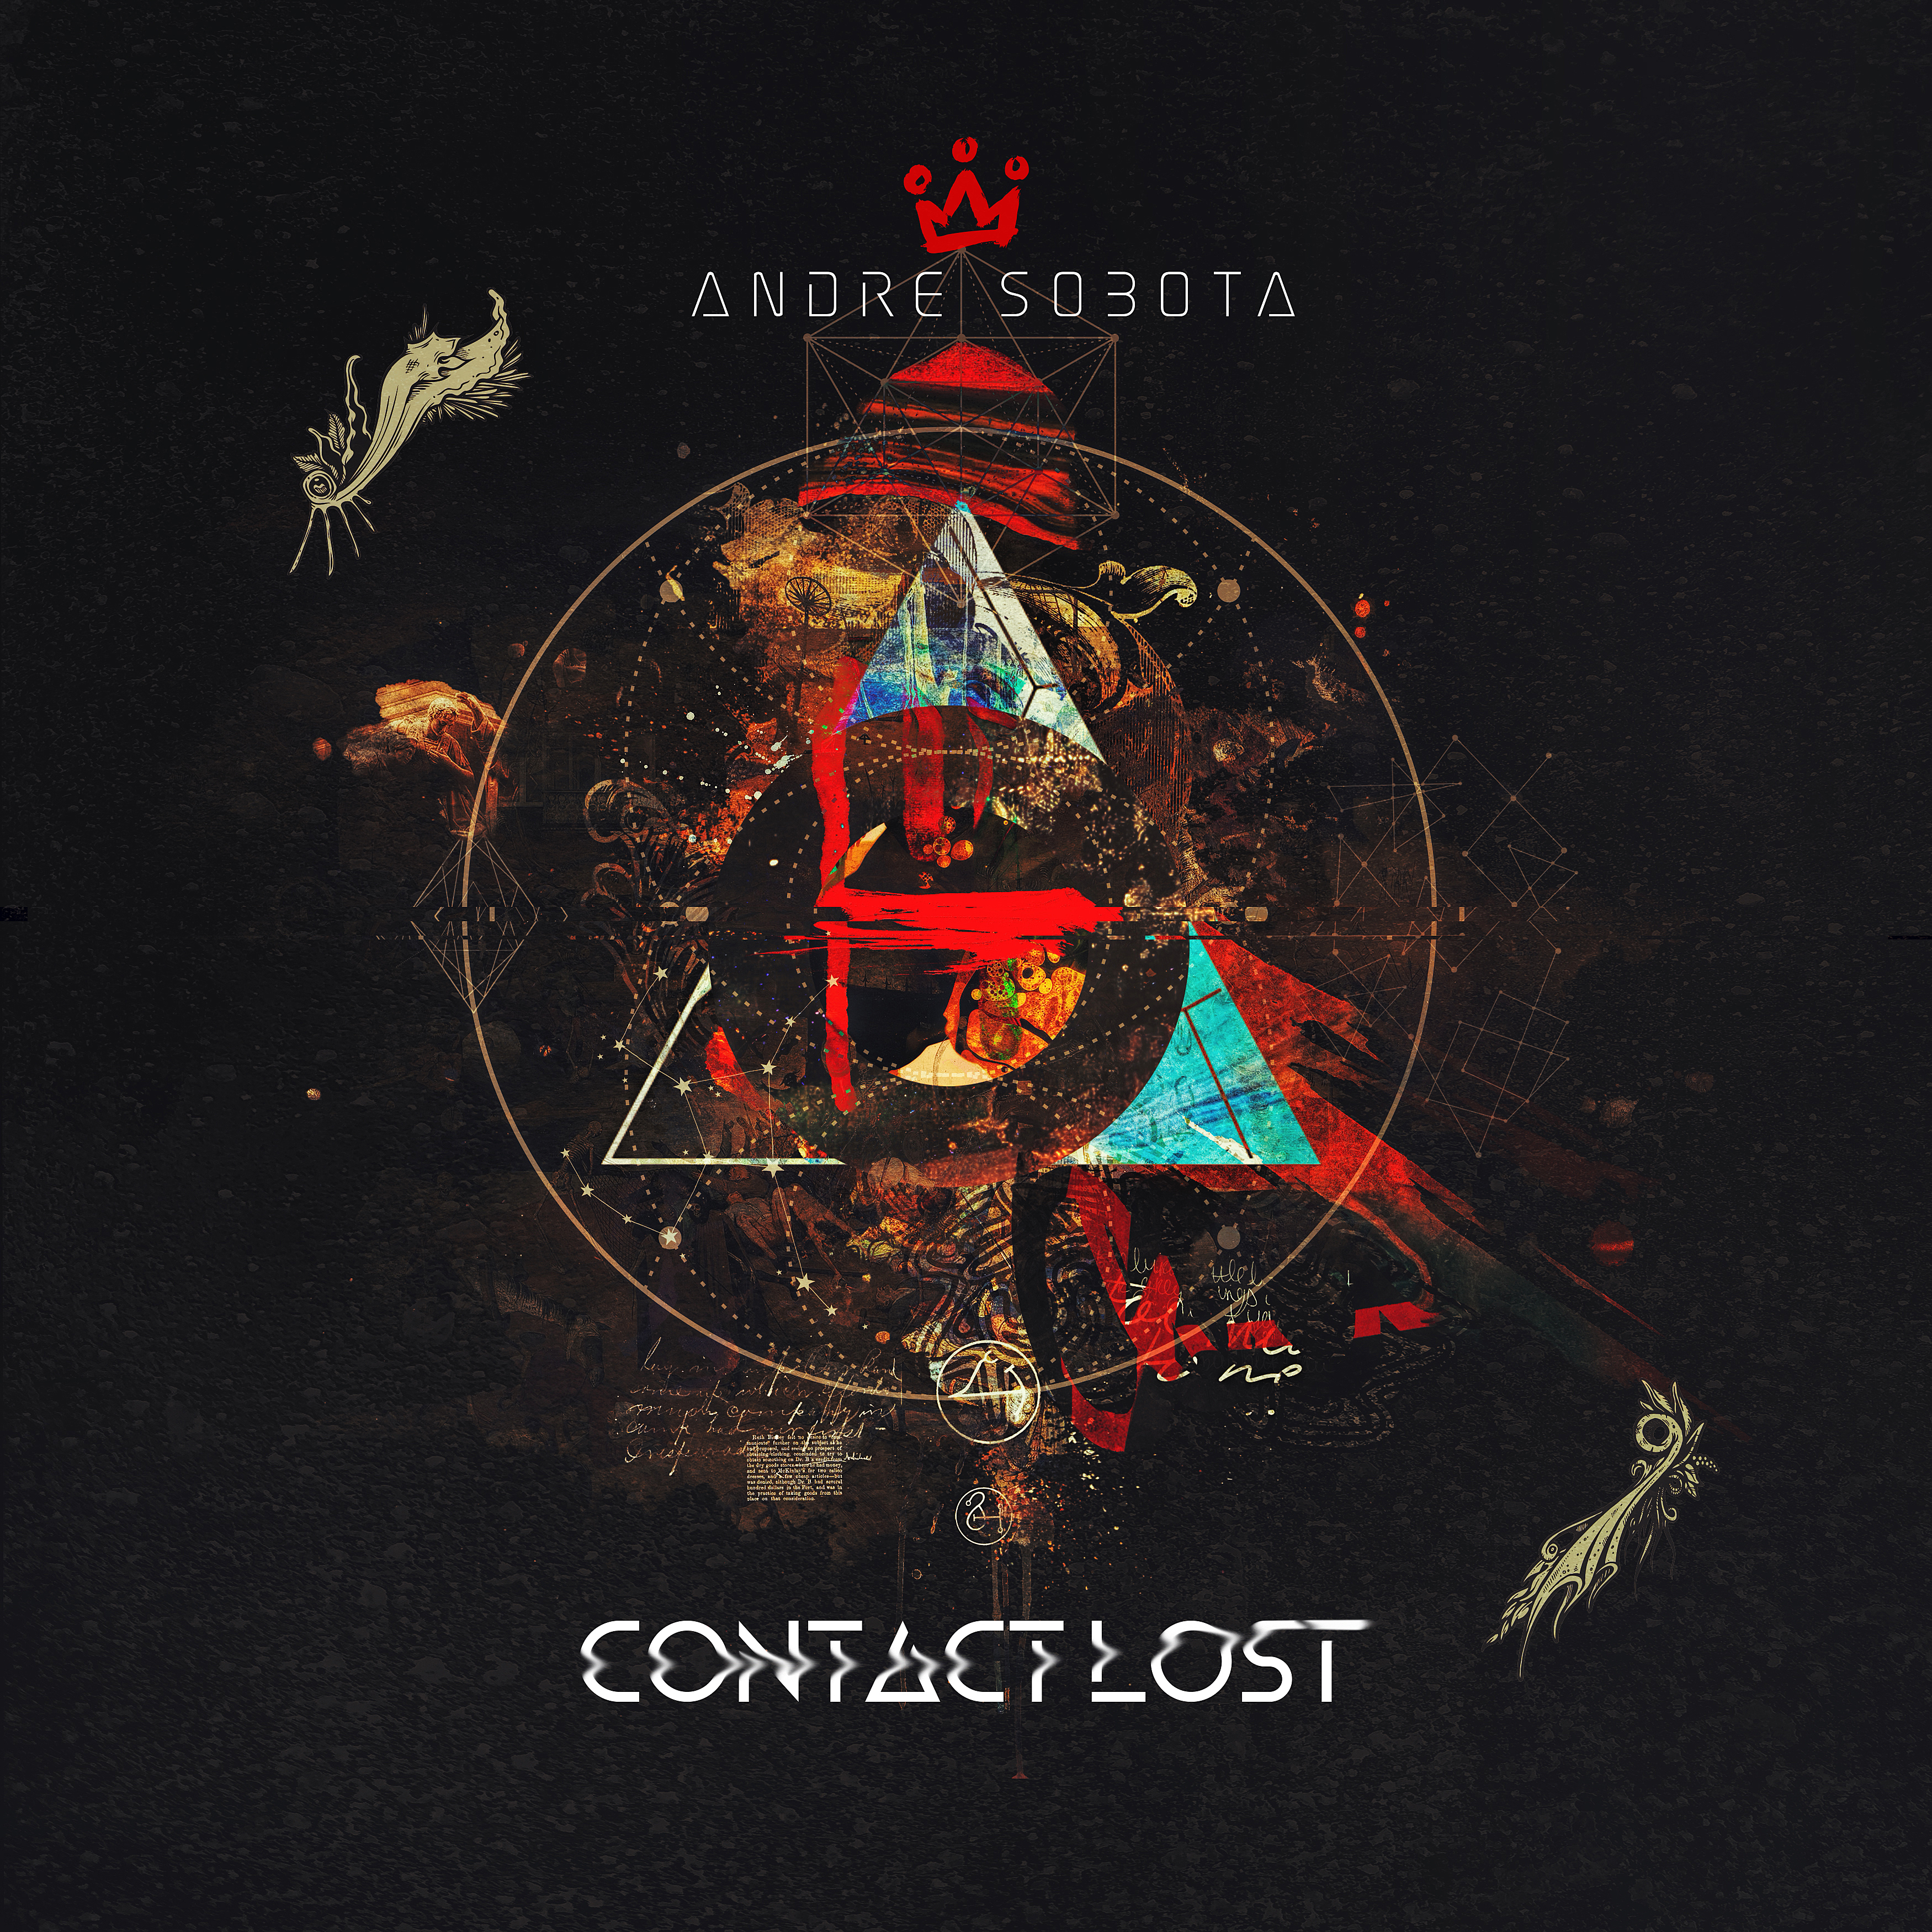 Andre Sobota Contact Lost EP Album Cover